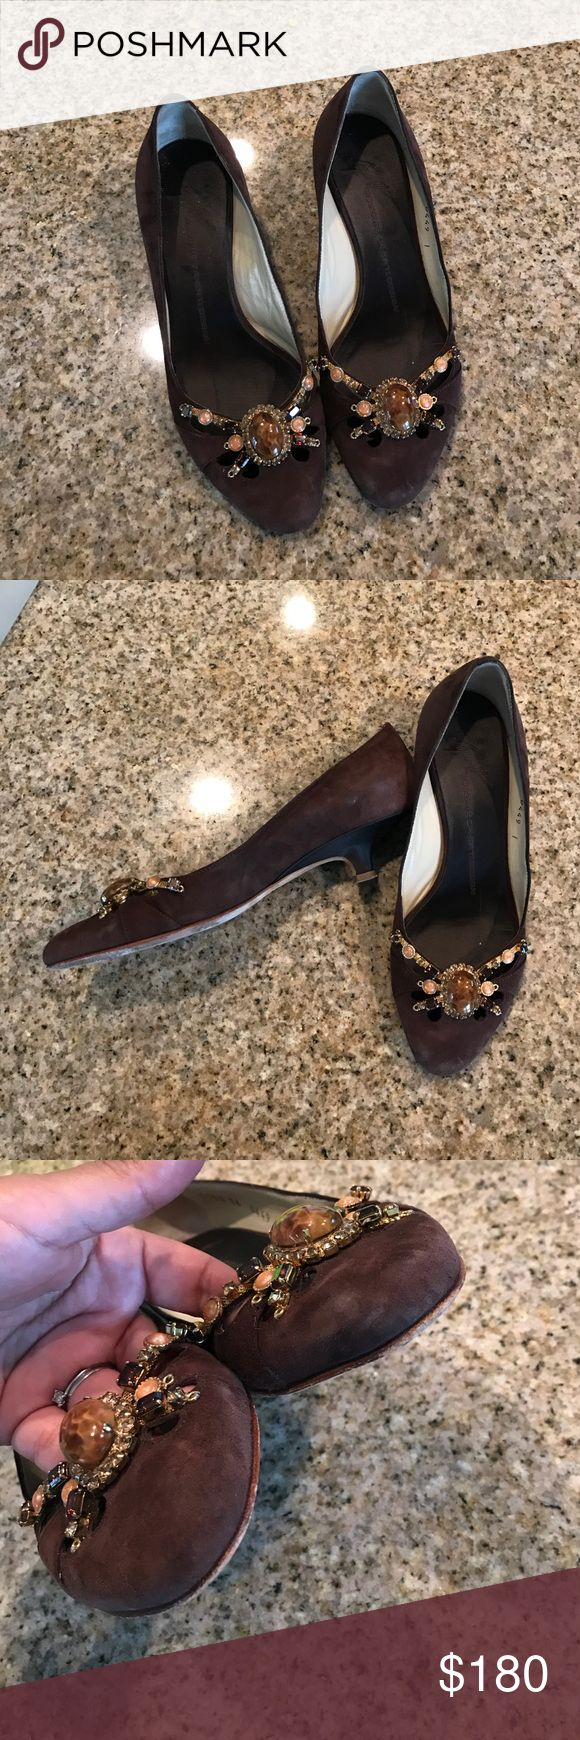 ‼️sale‼️RARE Giuseppe Zanotti size 36 In excellent condition. Price is firm Giuseppe Zanotti Shoes Heels